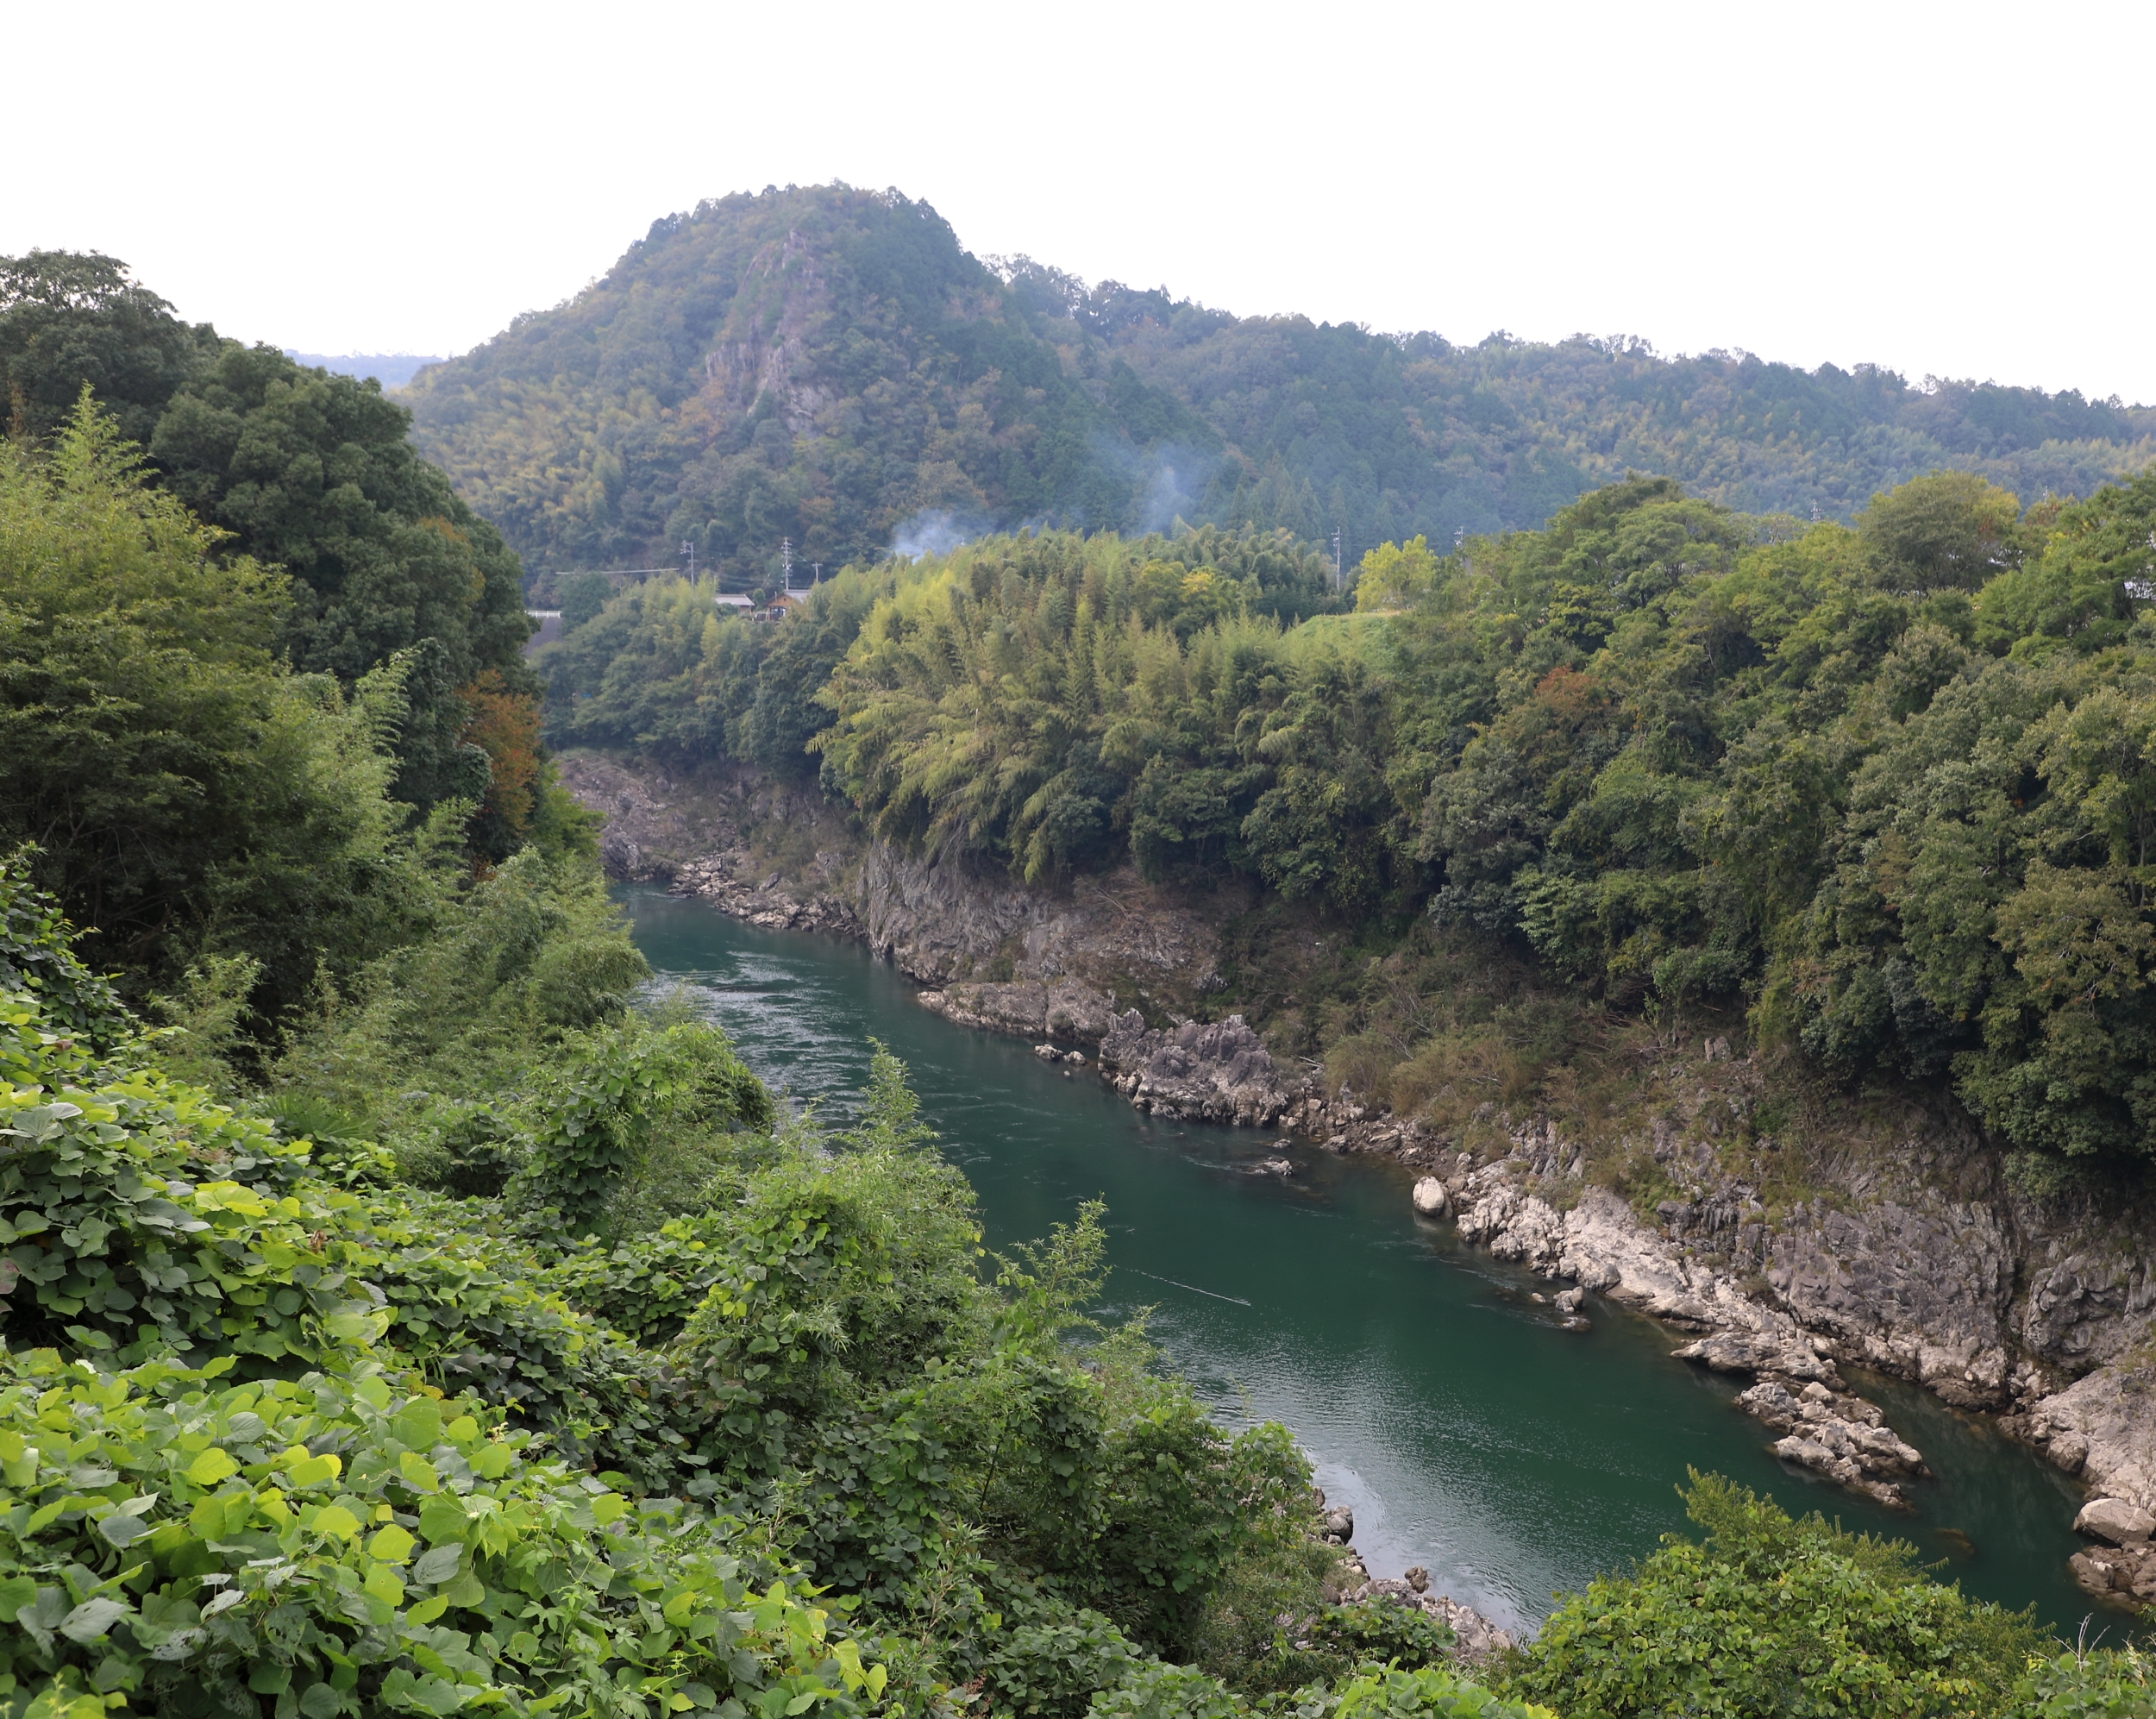 Starting in the high mountains of the Japanese Alps, the Hida River flows through Kawabe and soon after joins the Kiso River. The valleys of the Hida and Kiso rivers are famous for their well-preserved mountain villages and walking courses through their beautiful wild landscapes.